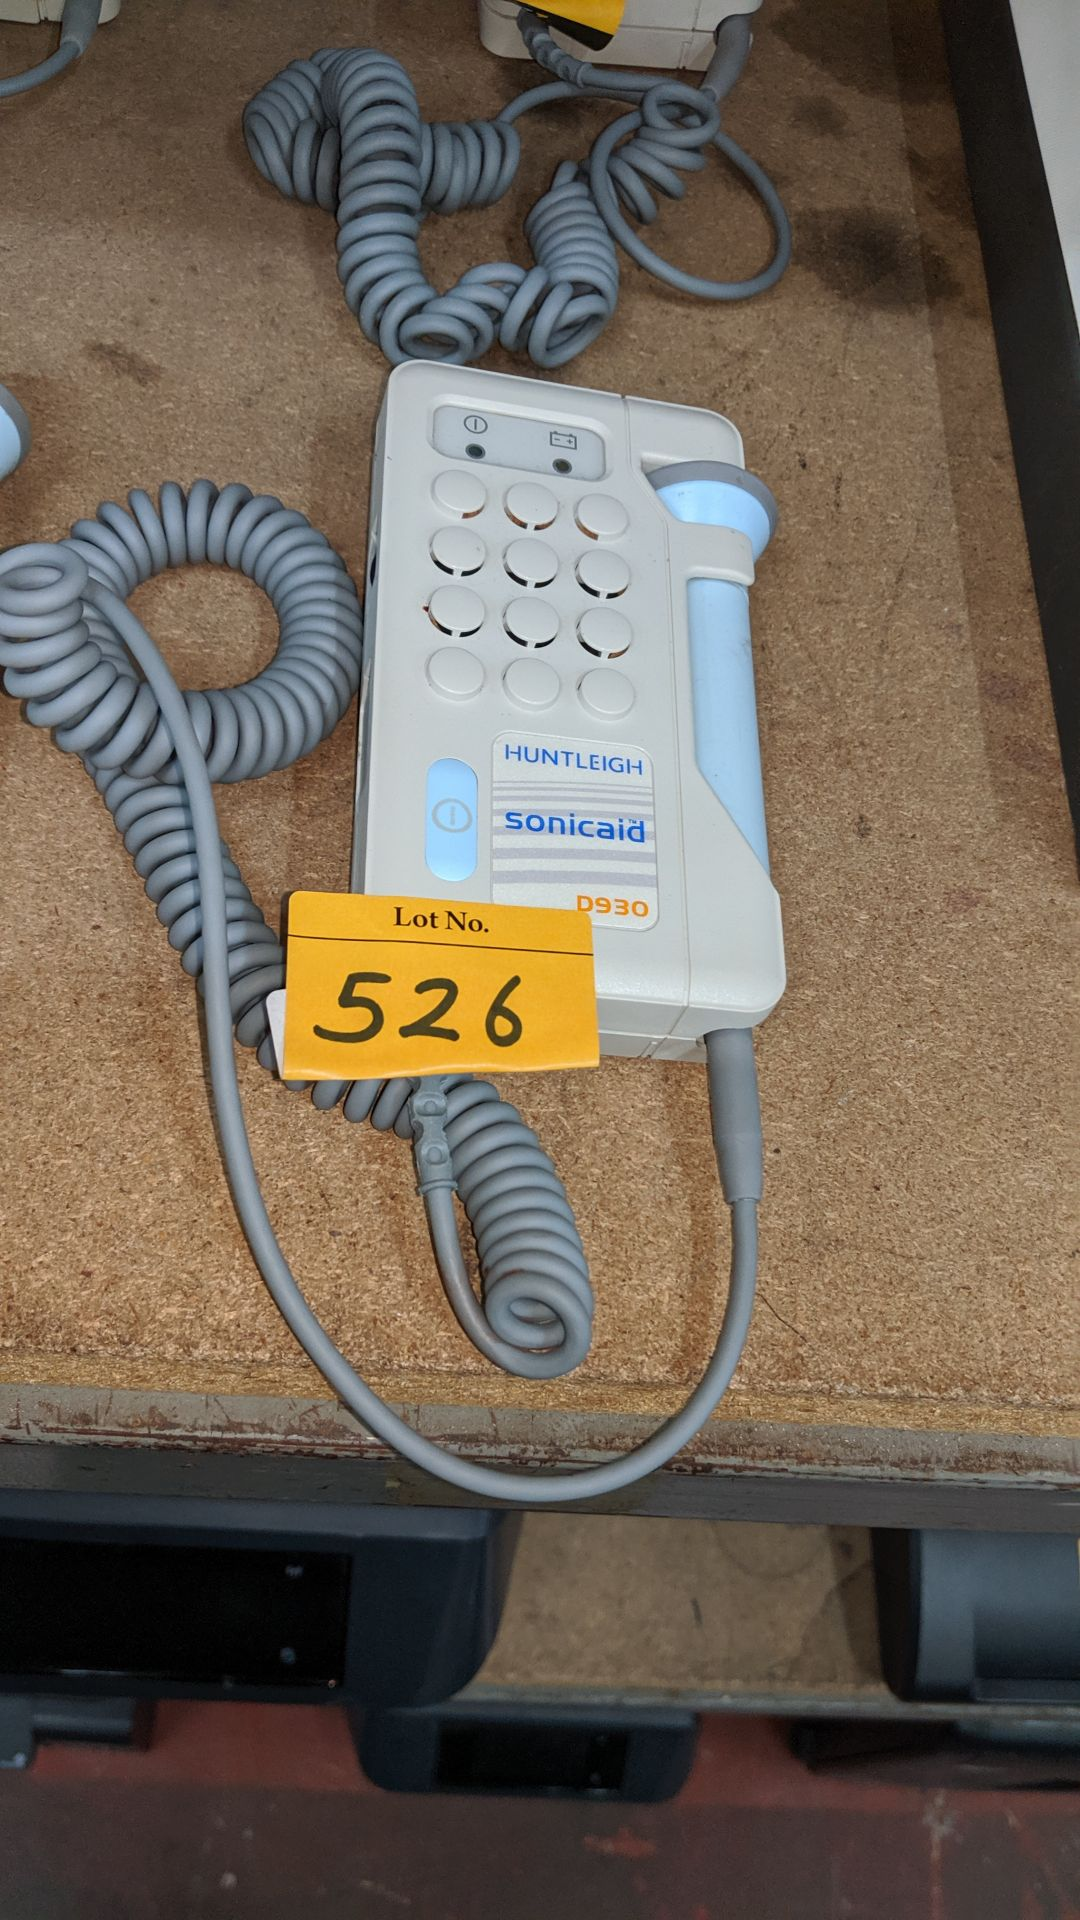 Lot 526 - Huntleigh Sonicaid model D930 Fetal Doppler . This is one of a large number of lots used/owned by